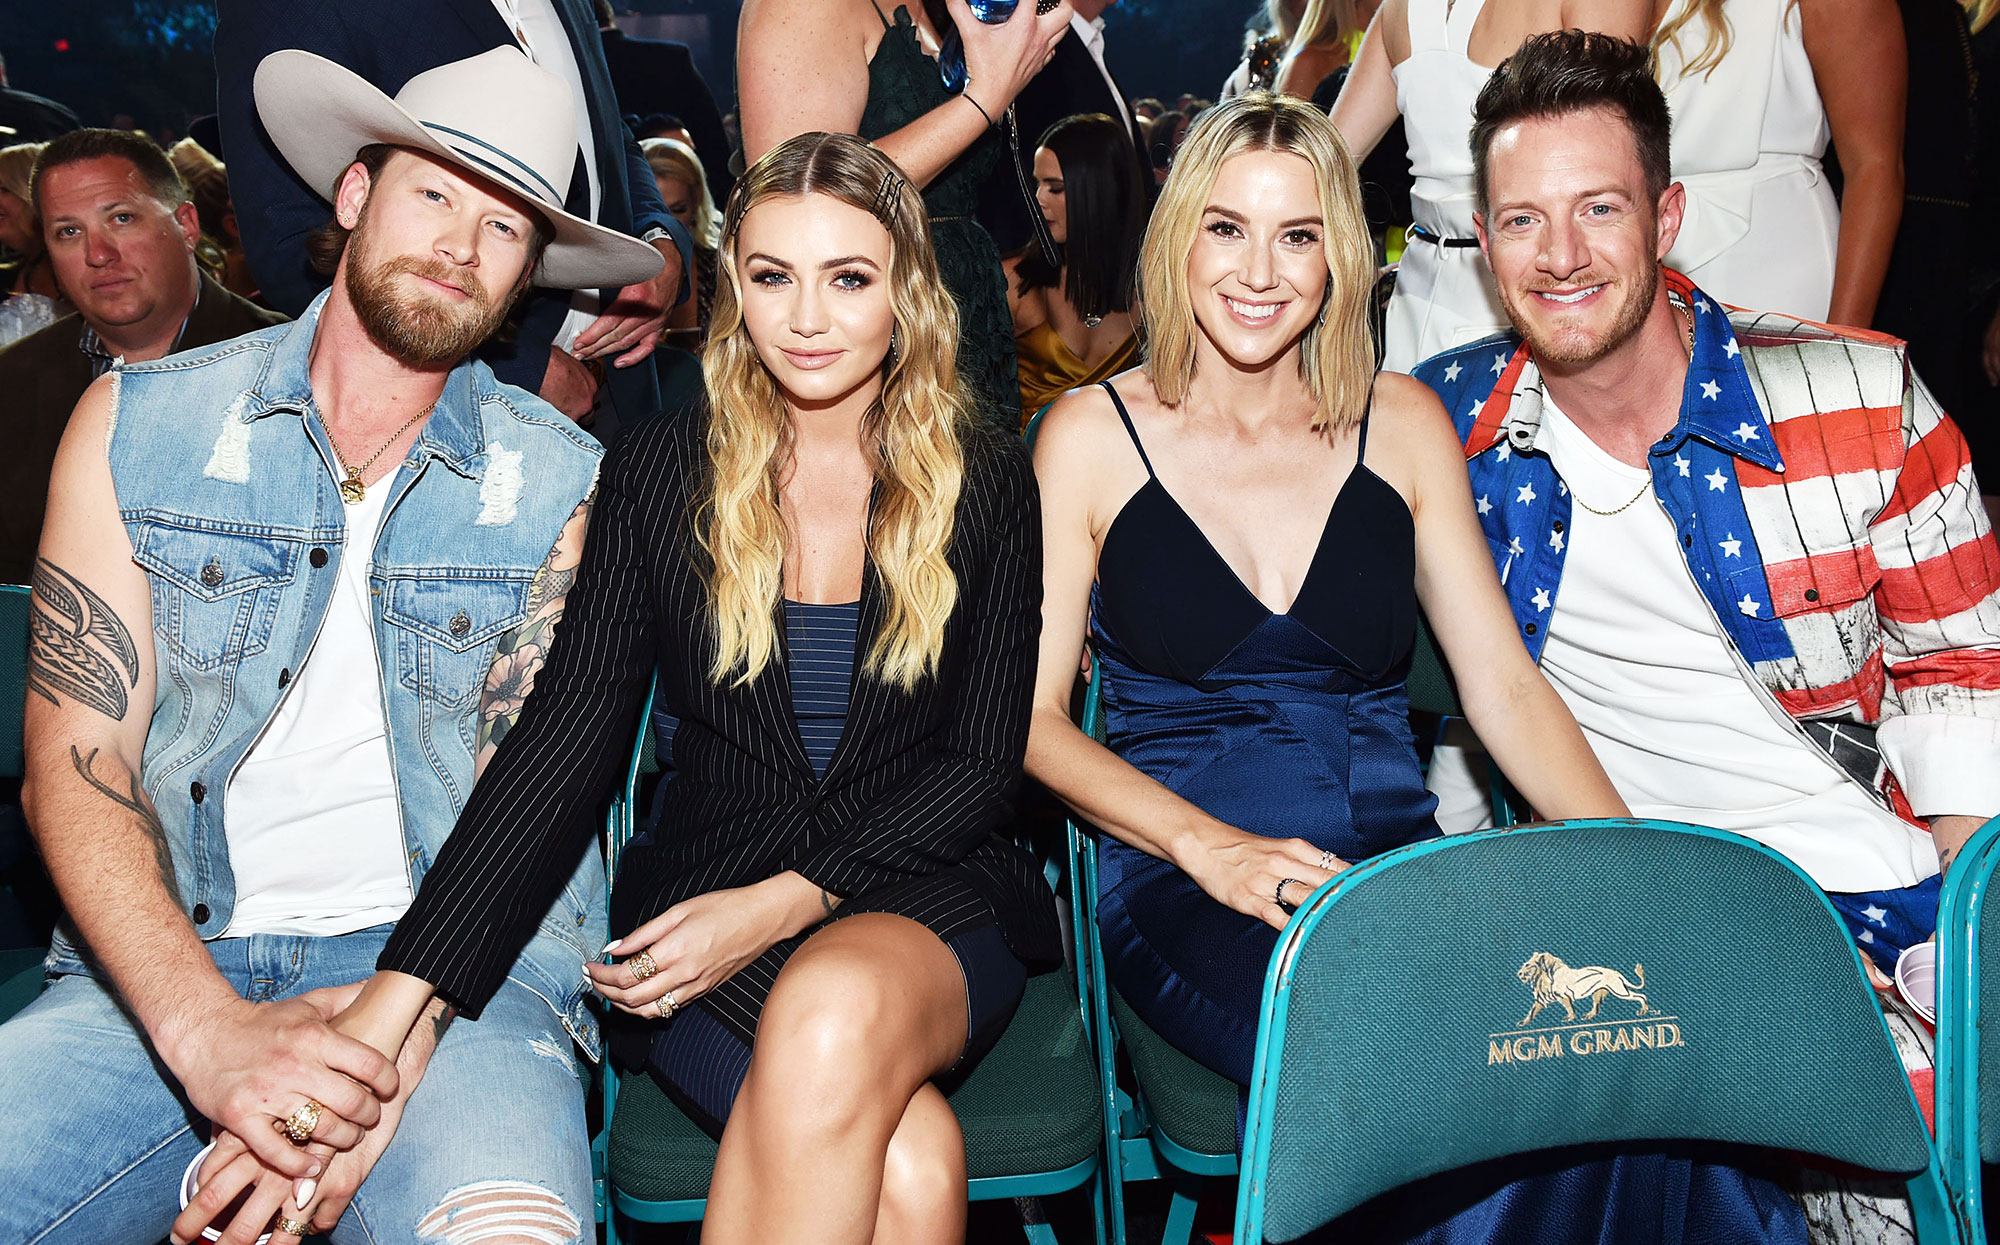 Inside ACM Awards 2019 Tyler Hubbard Brian Kelley Brittney Kelley Hayley Hubbard - Hubbard and his wife, Hayley, sat beside Kelley and his wife, Brittney.